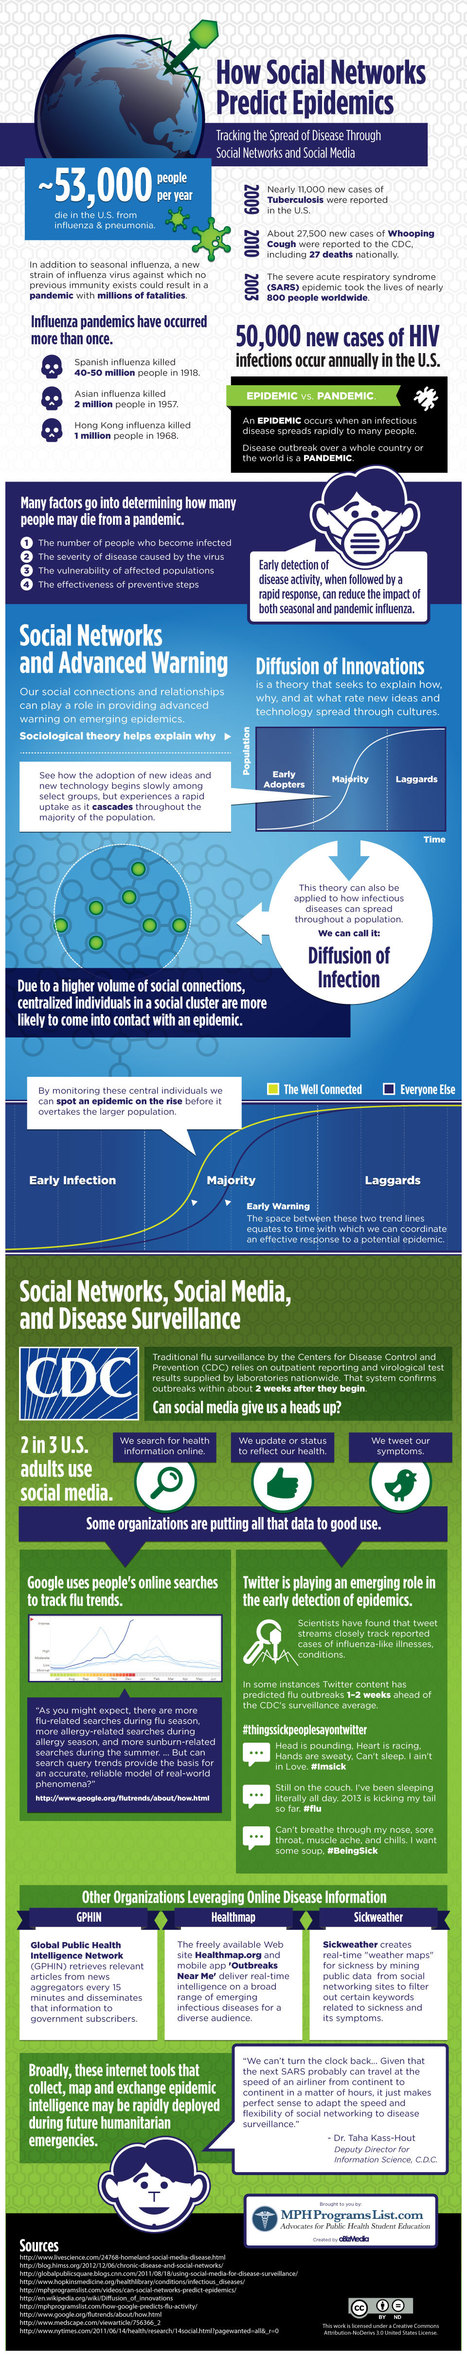 How Social Networks Predict Epidemics [INFOGRAPHIC] | Santé | Scoop.it